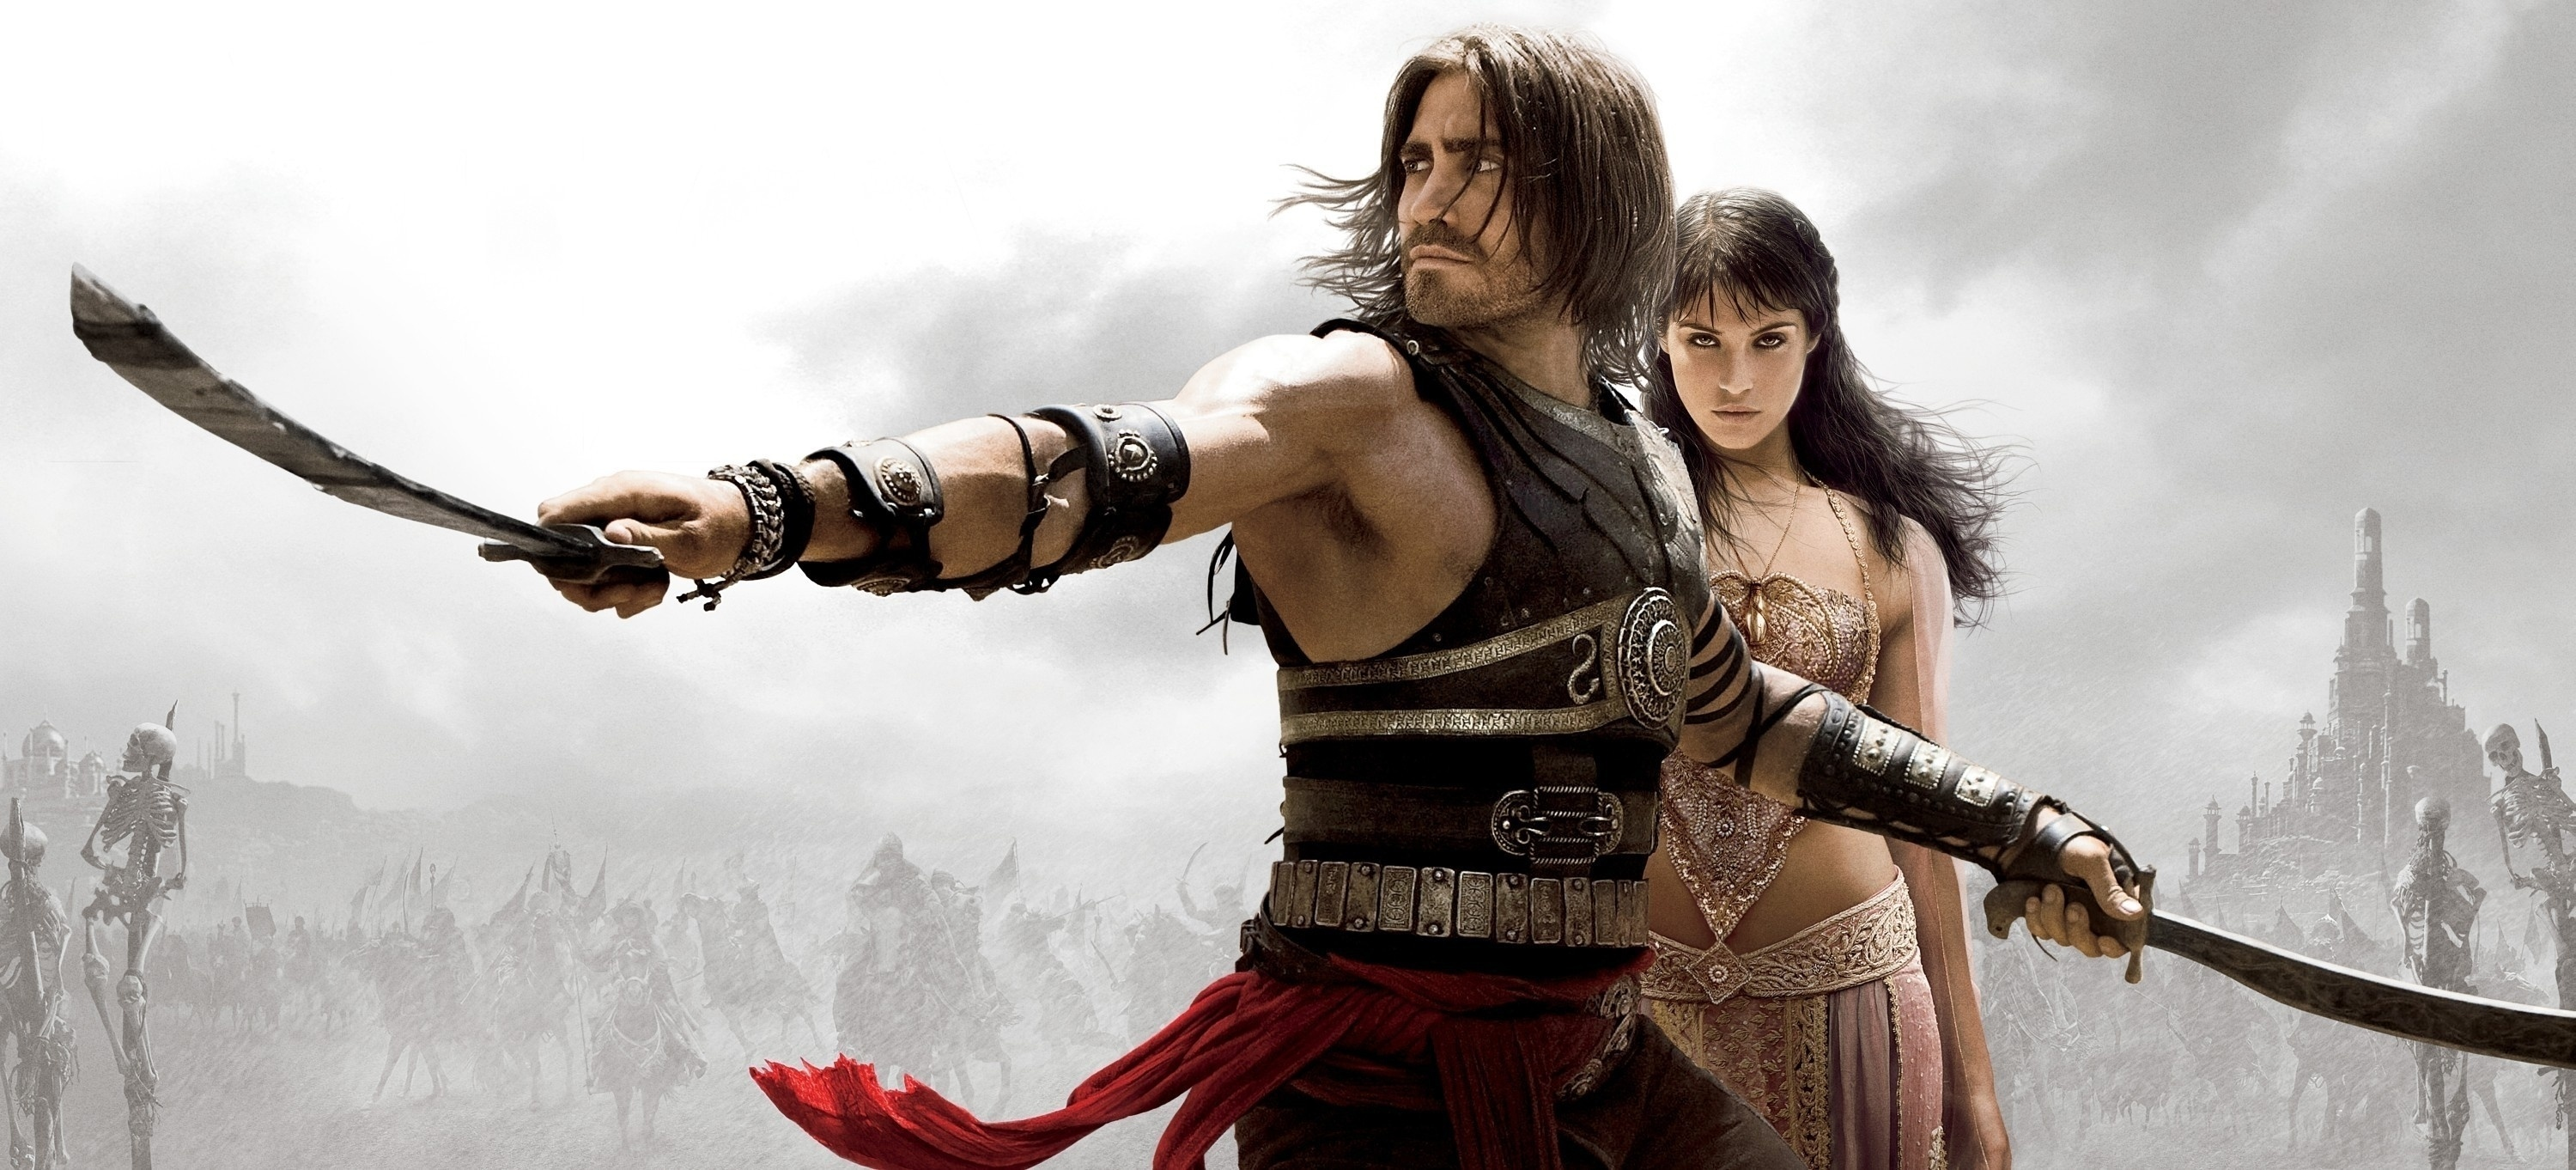 24 prince of persia: the sands of time hd wallpapers | background